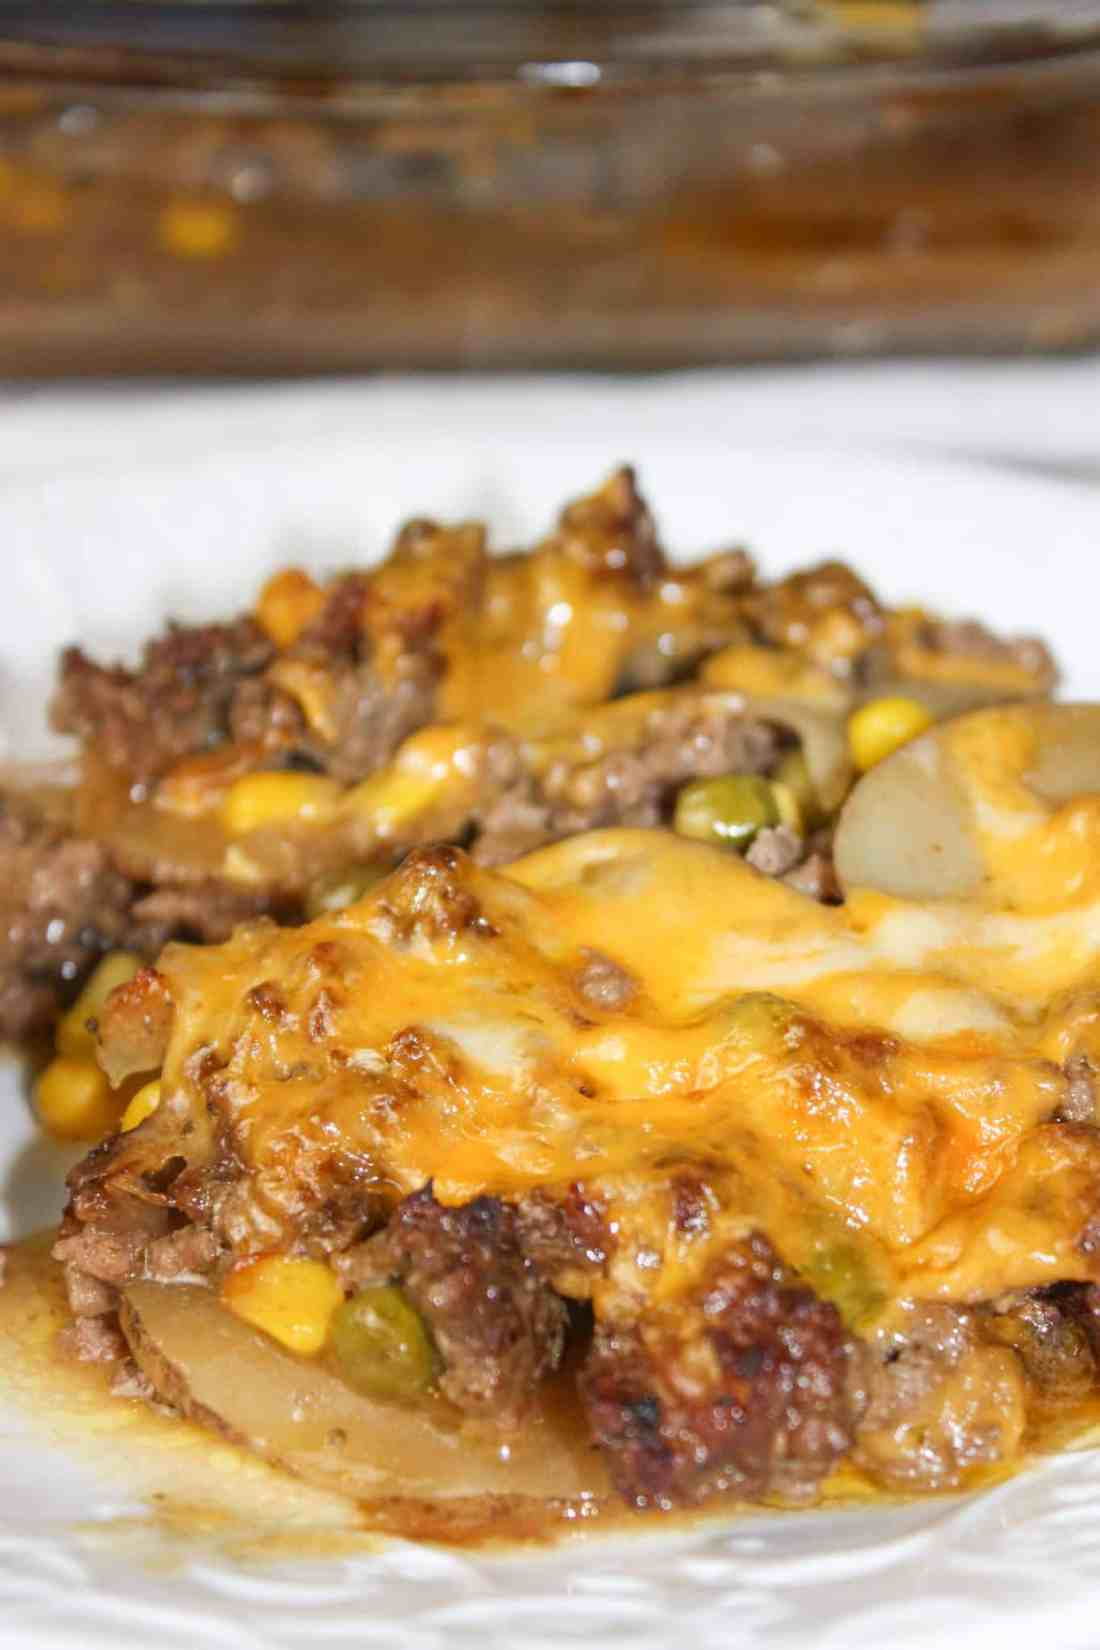 Ground Beef Casserole is a layered dinner recipe that is loaded with potatoes, vegetables and beef.  The gluten free sauce or gravy not only adds moisture but flavour as well.